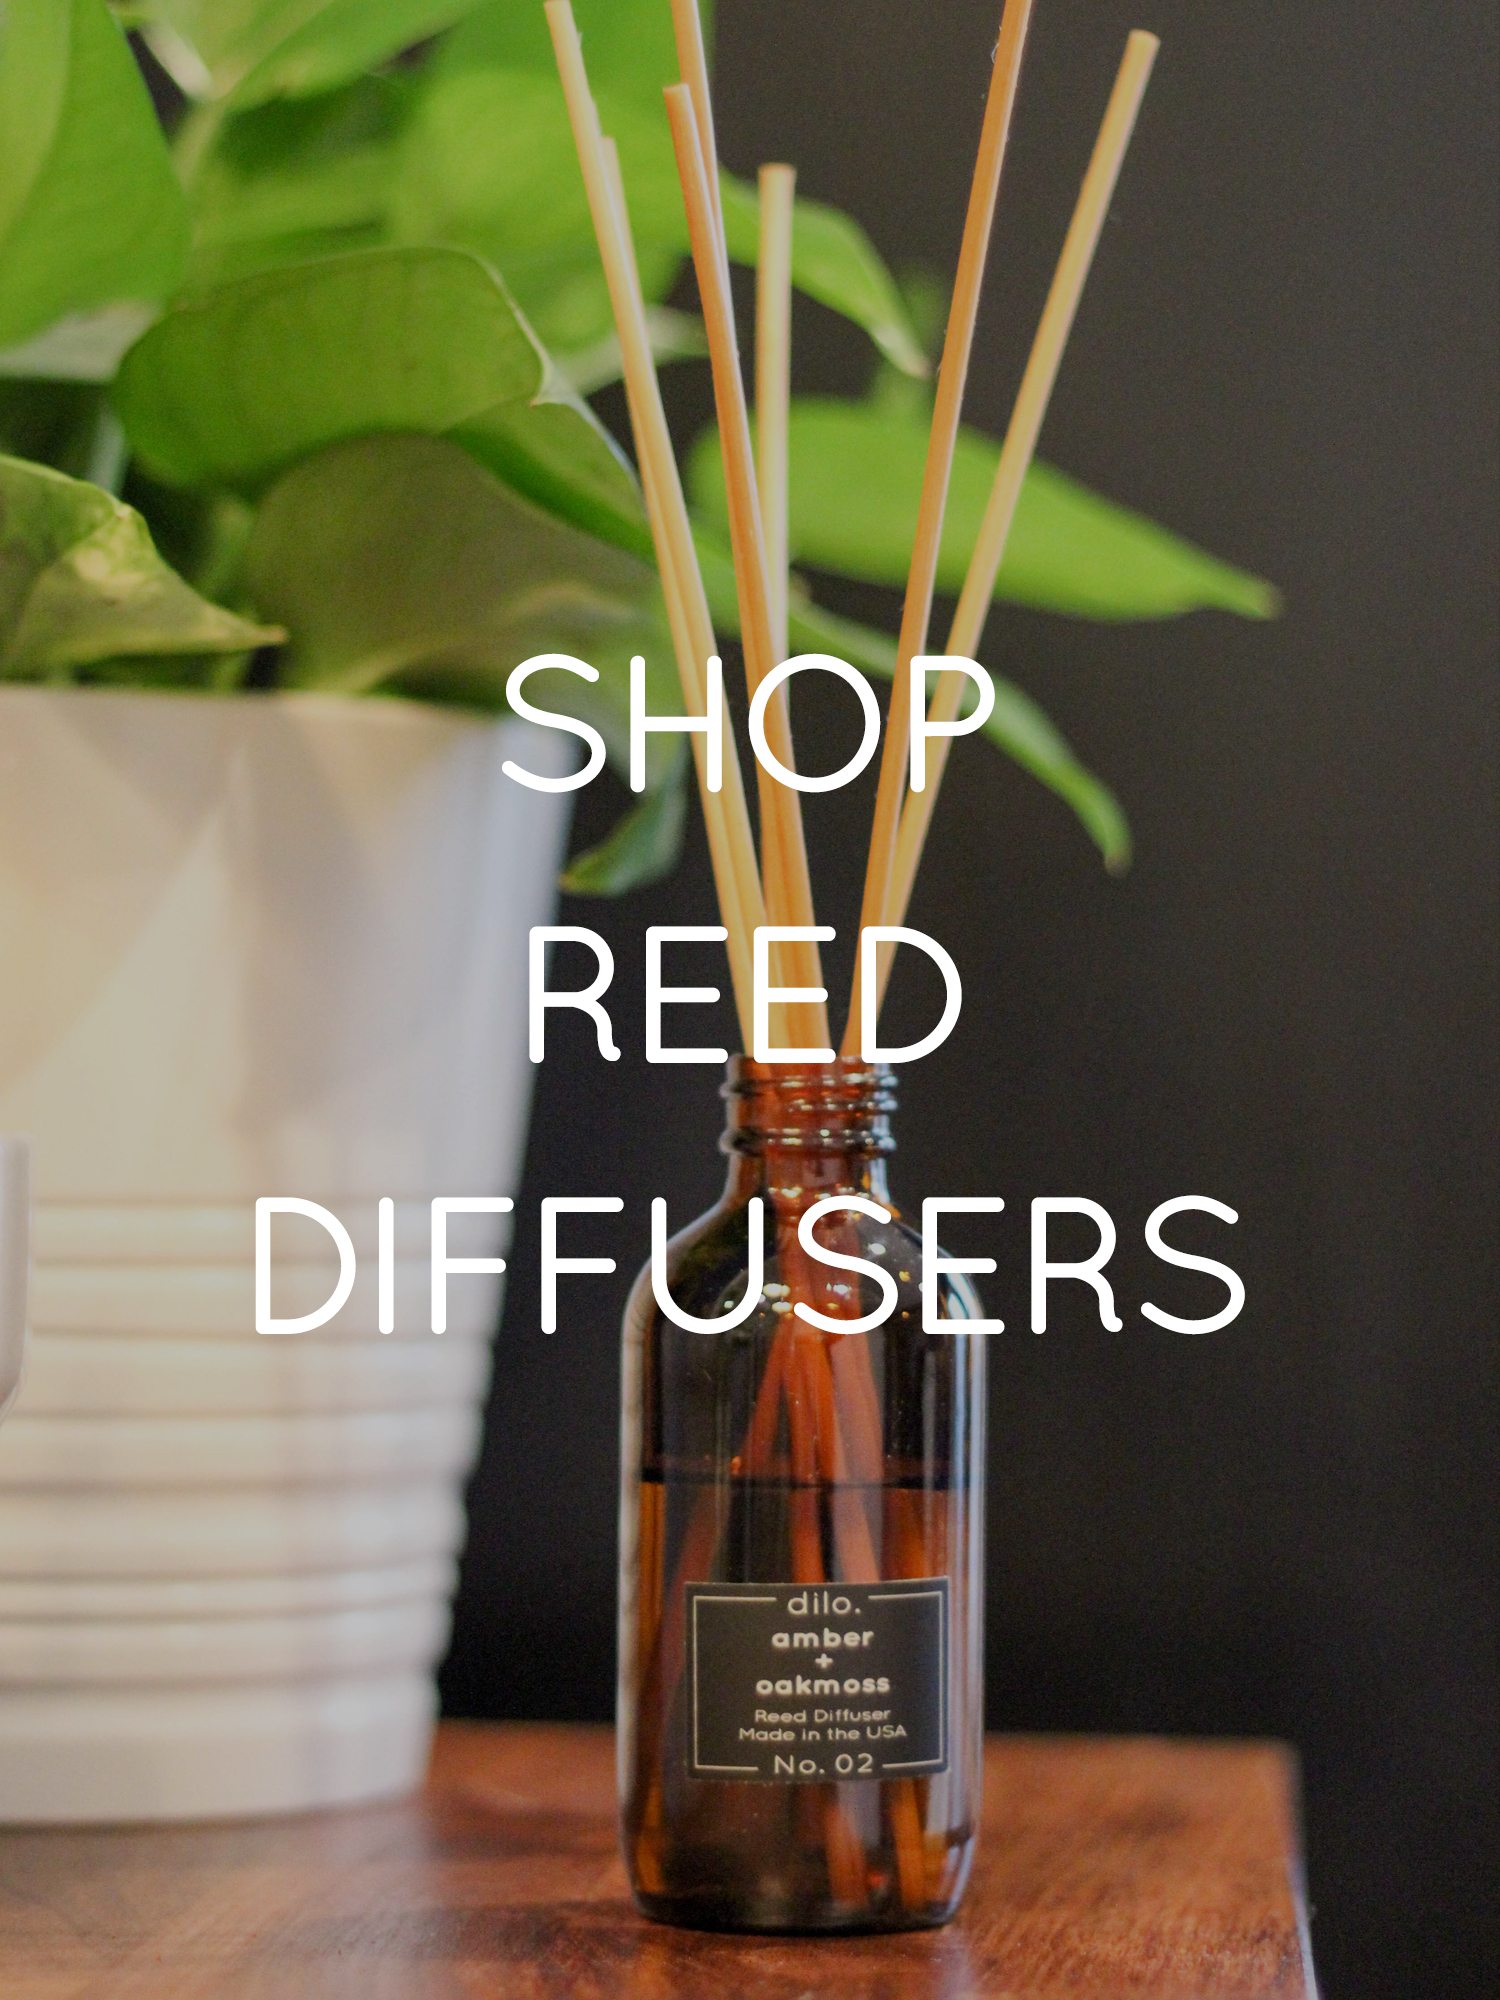 SHOP REED DIFFUSERS.jpg